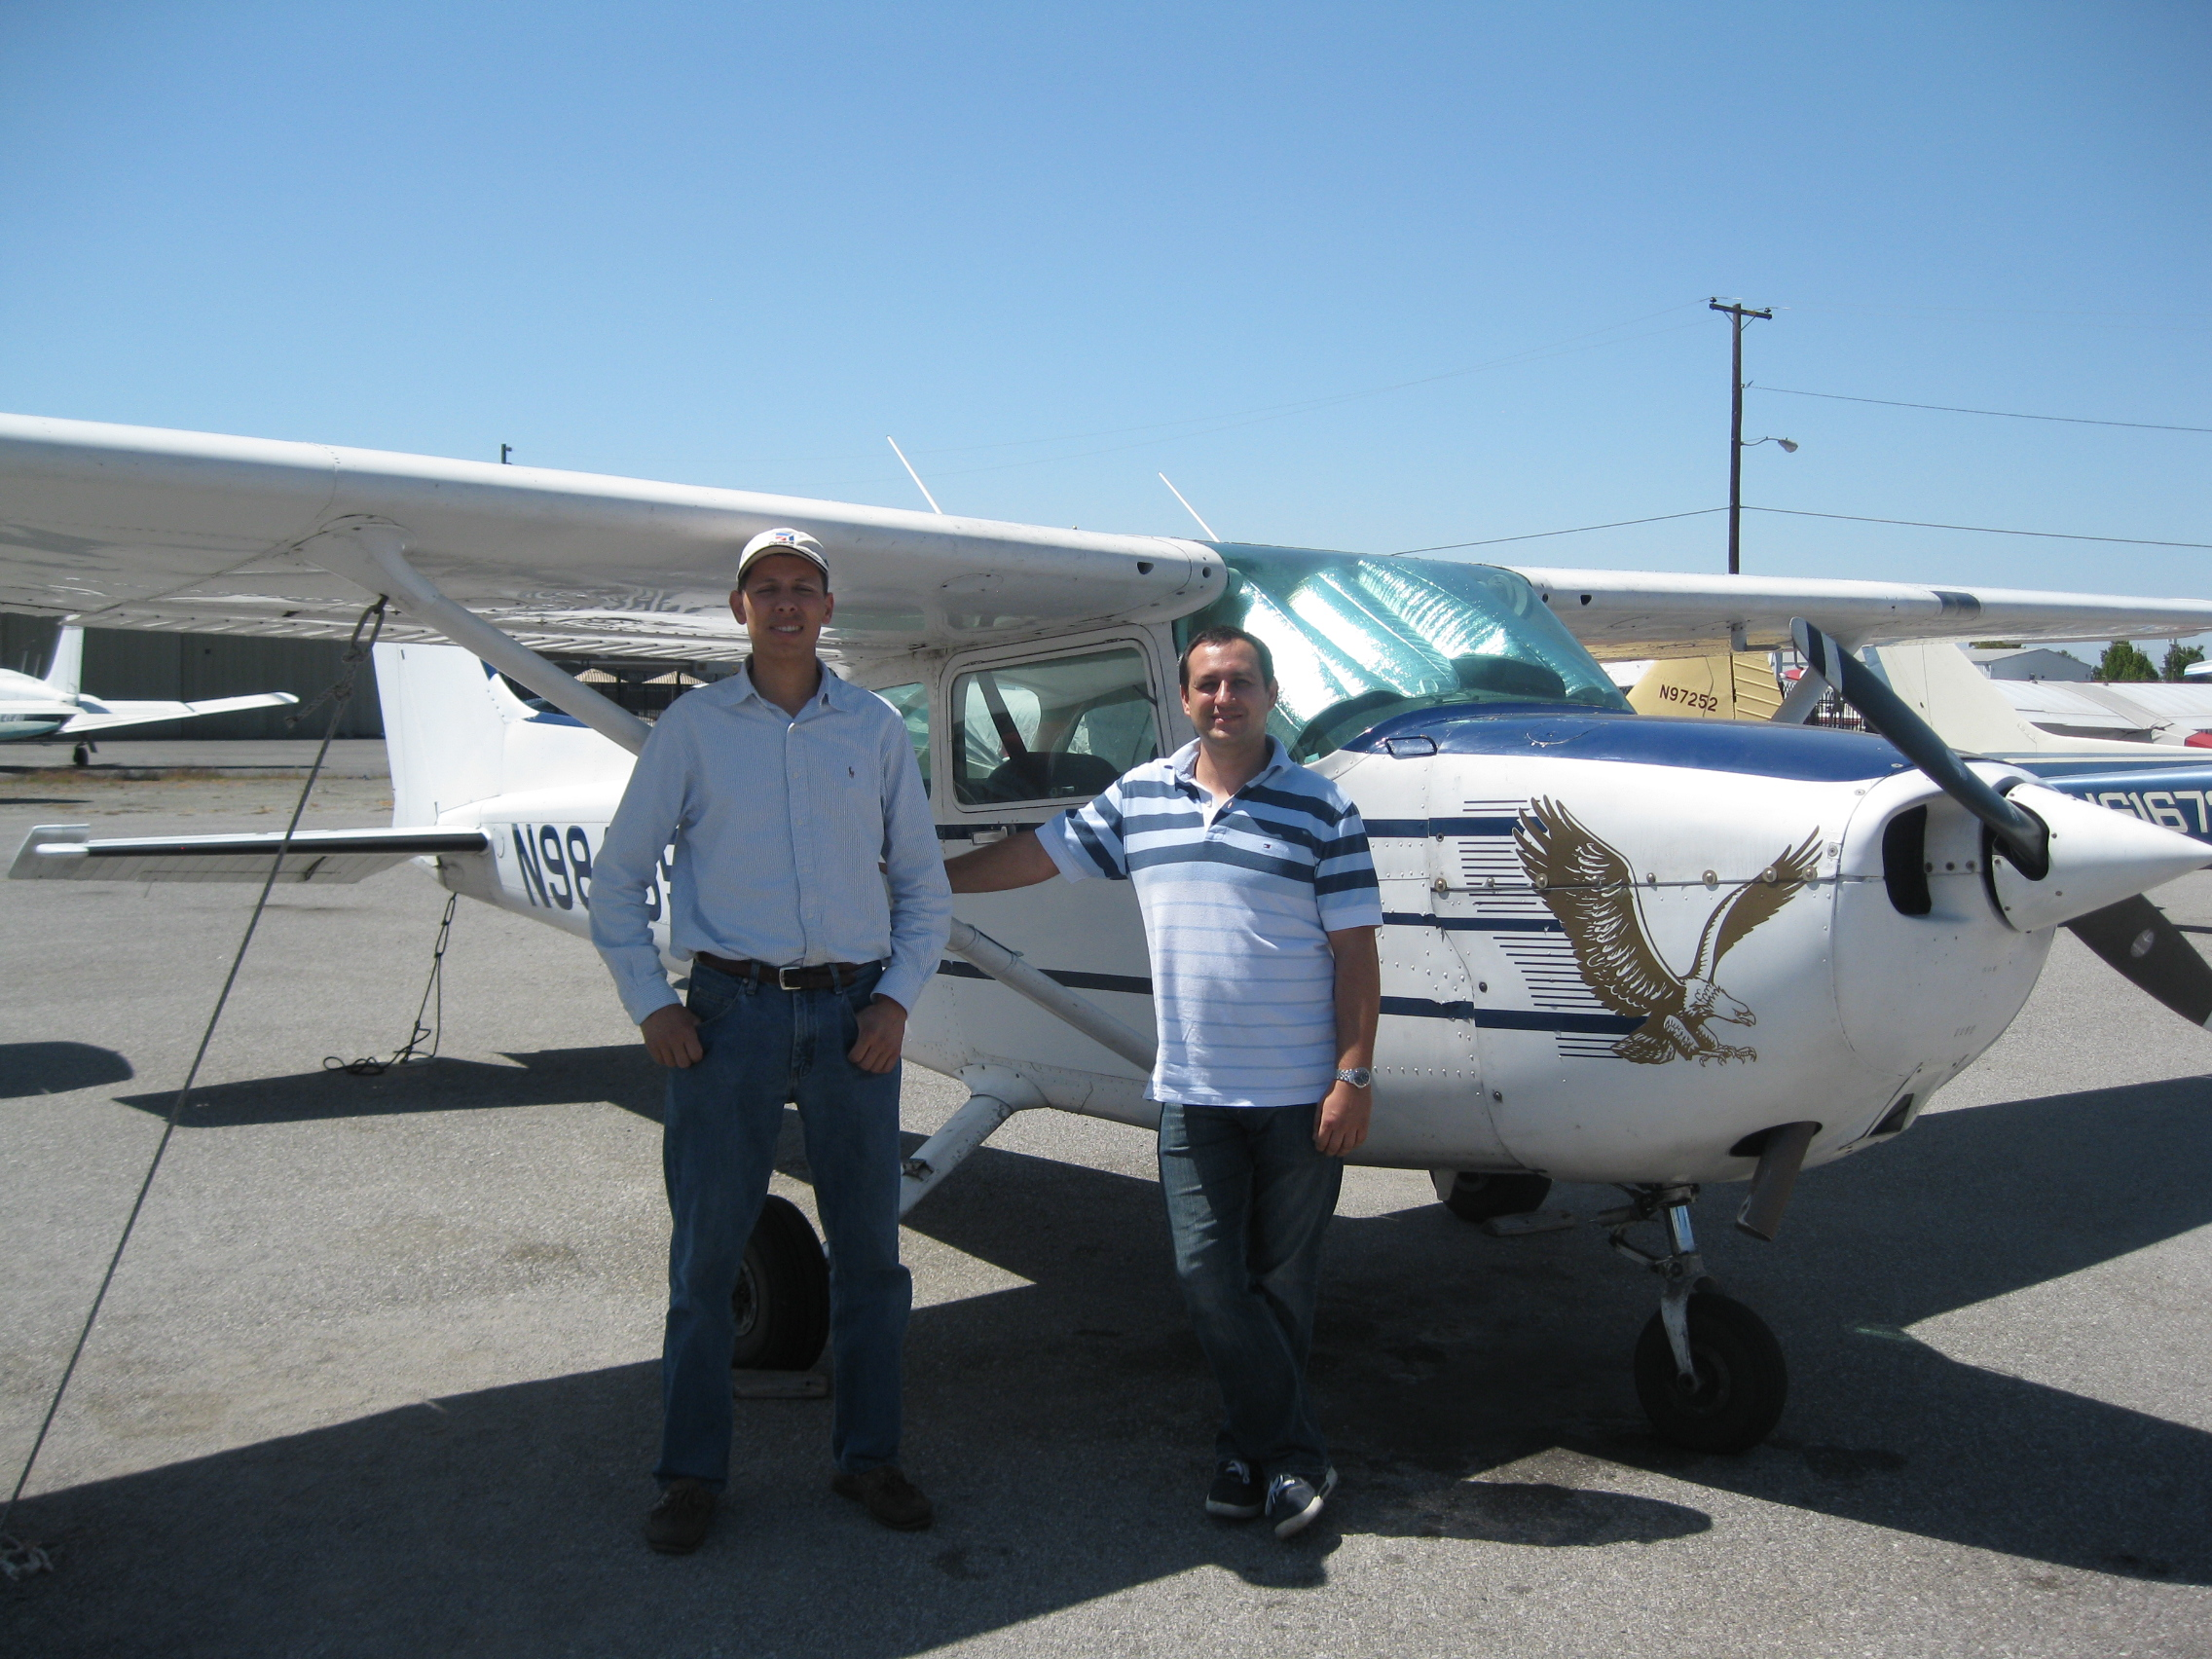 Robert Laczko soloes Cessna 172 at AeroDynamic Aviation located at Reid Hillview Airport in San Jose, CA.